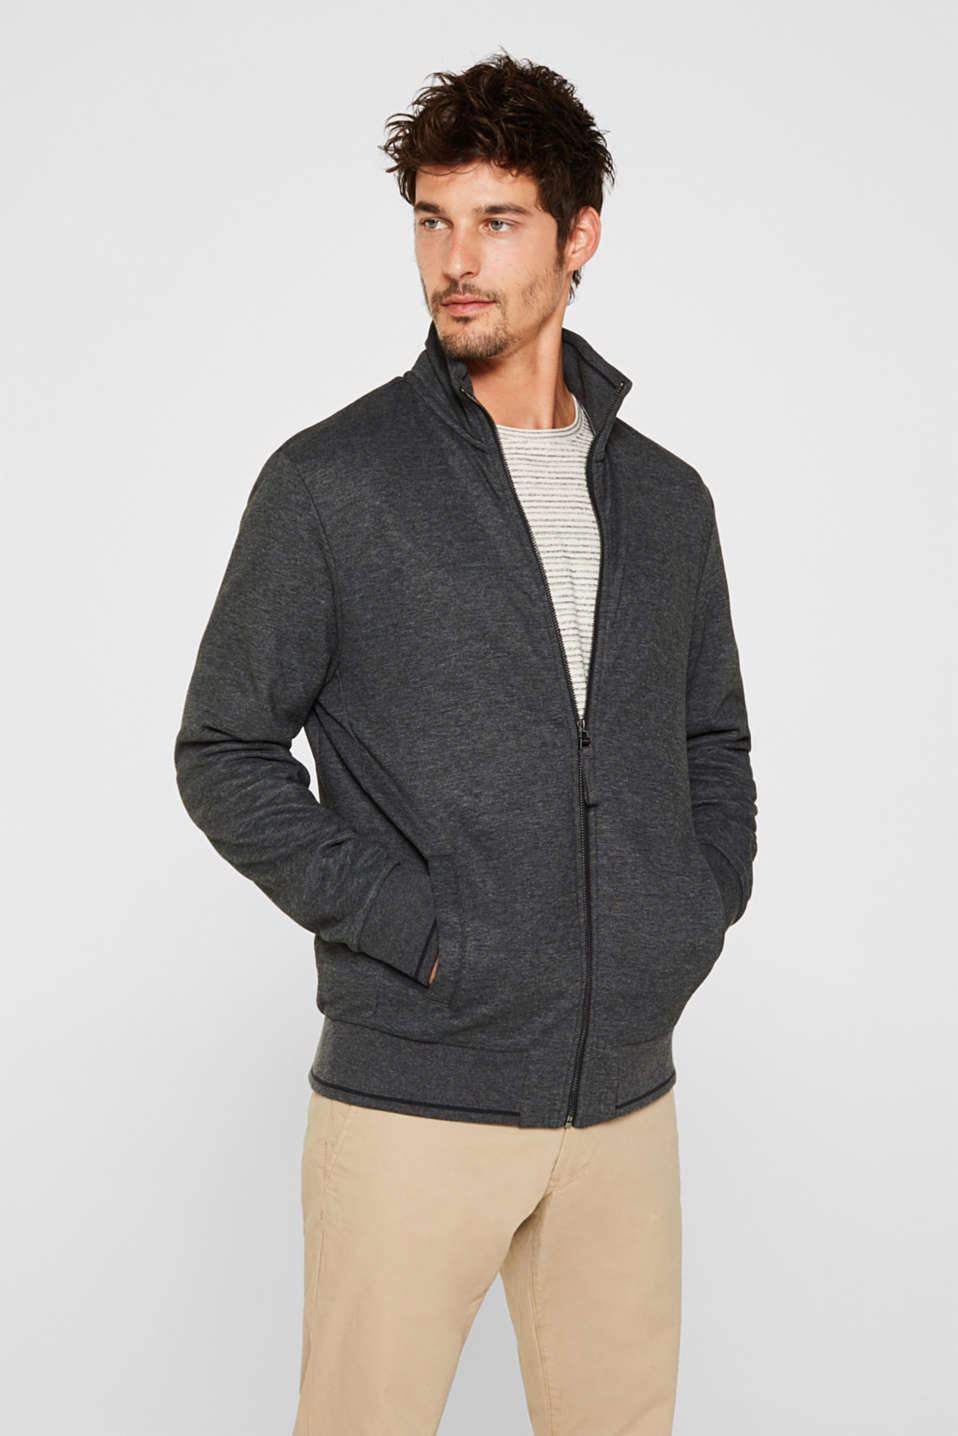 Cotton blend sweatshirt cardigan, ANTHRACITE, detail image number 0